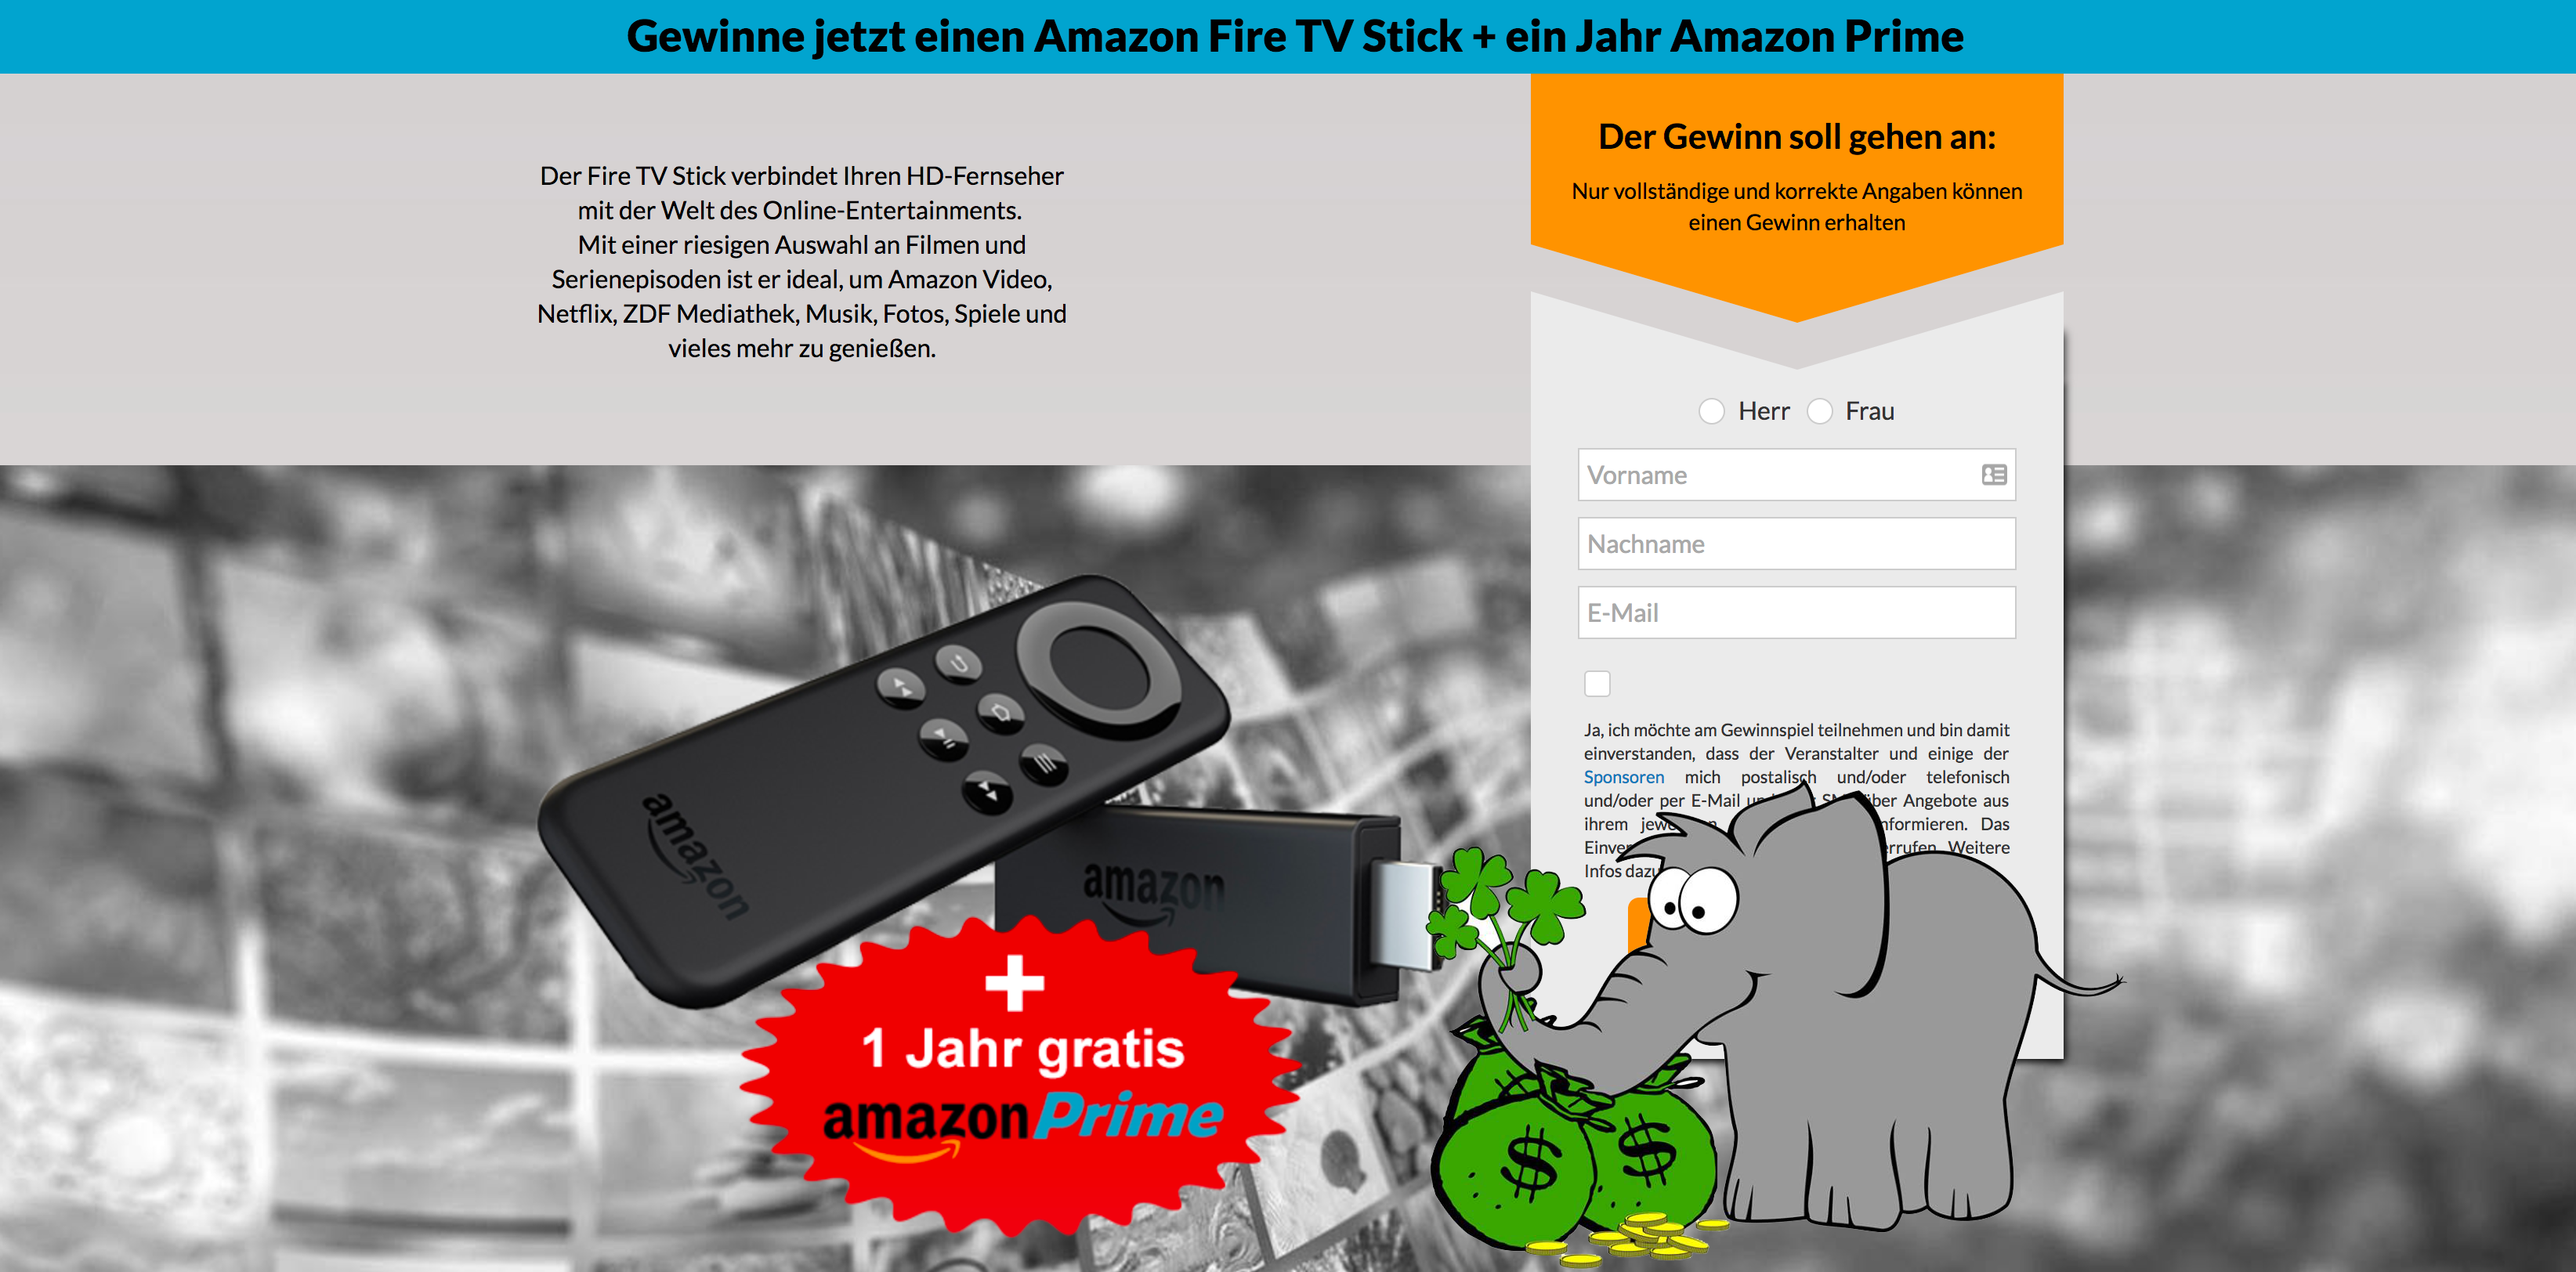 amazon fire stick 1 jahr prime zu gewinnen der gewinnofant. Black Bedroom Furniture Sets. Home Design Ideas